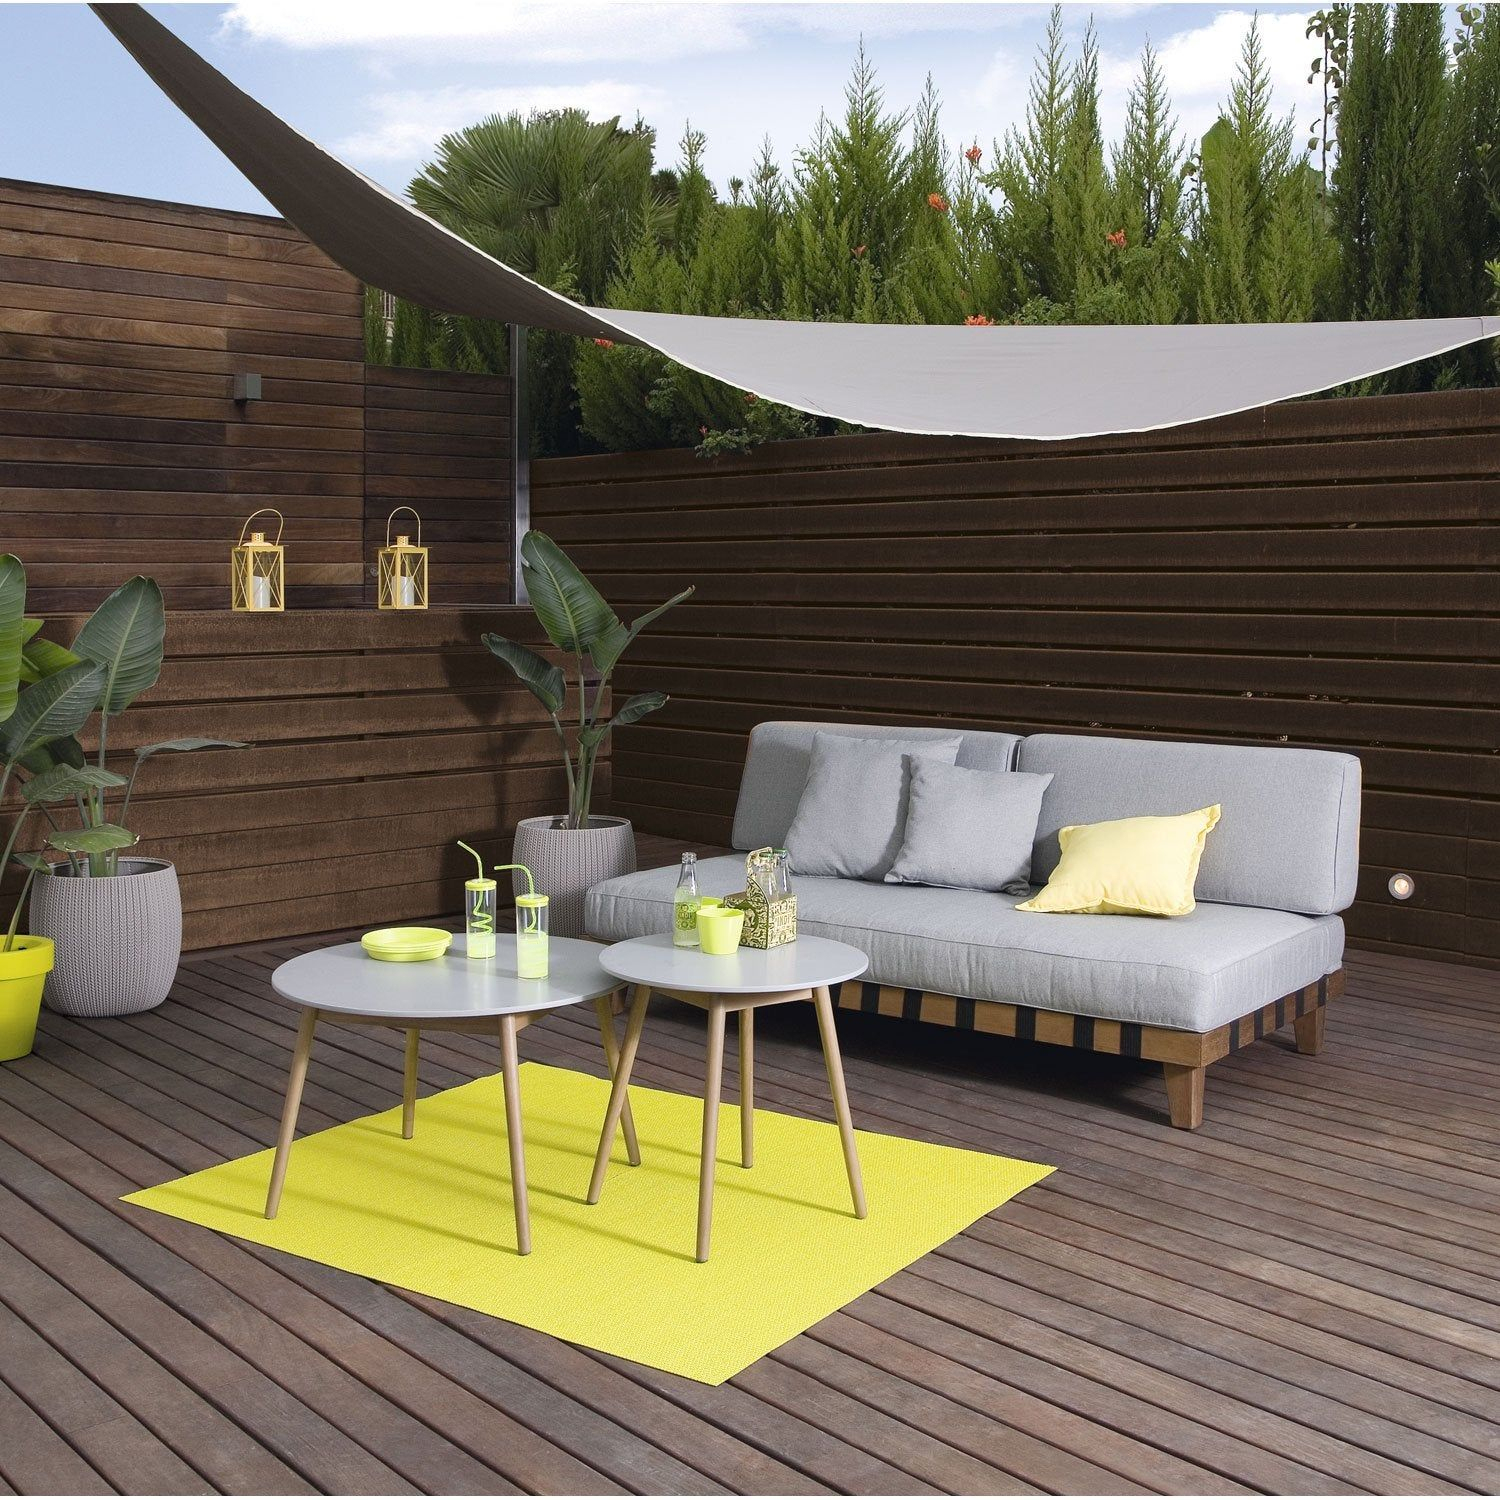 Voile D'ombrage Triangulaire Taupe Fossil L.360 X L.360 Cm ... concernant Toile Triangle Jardin